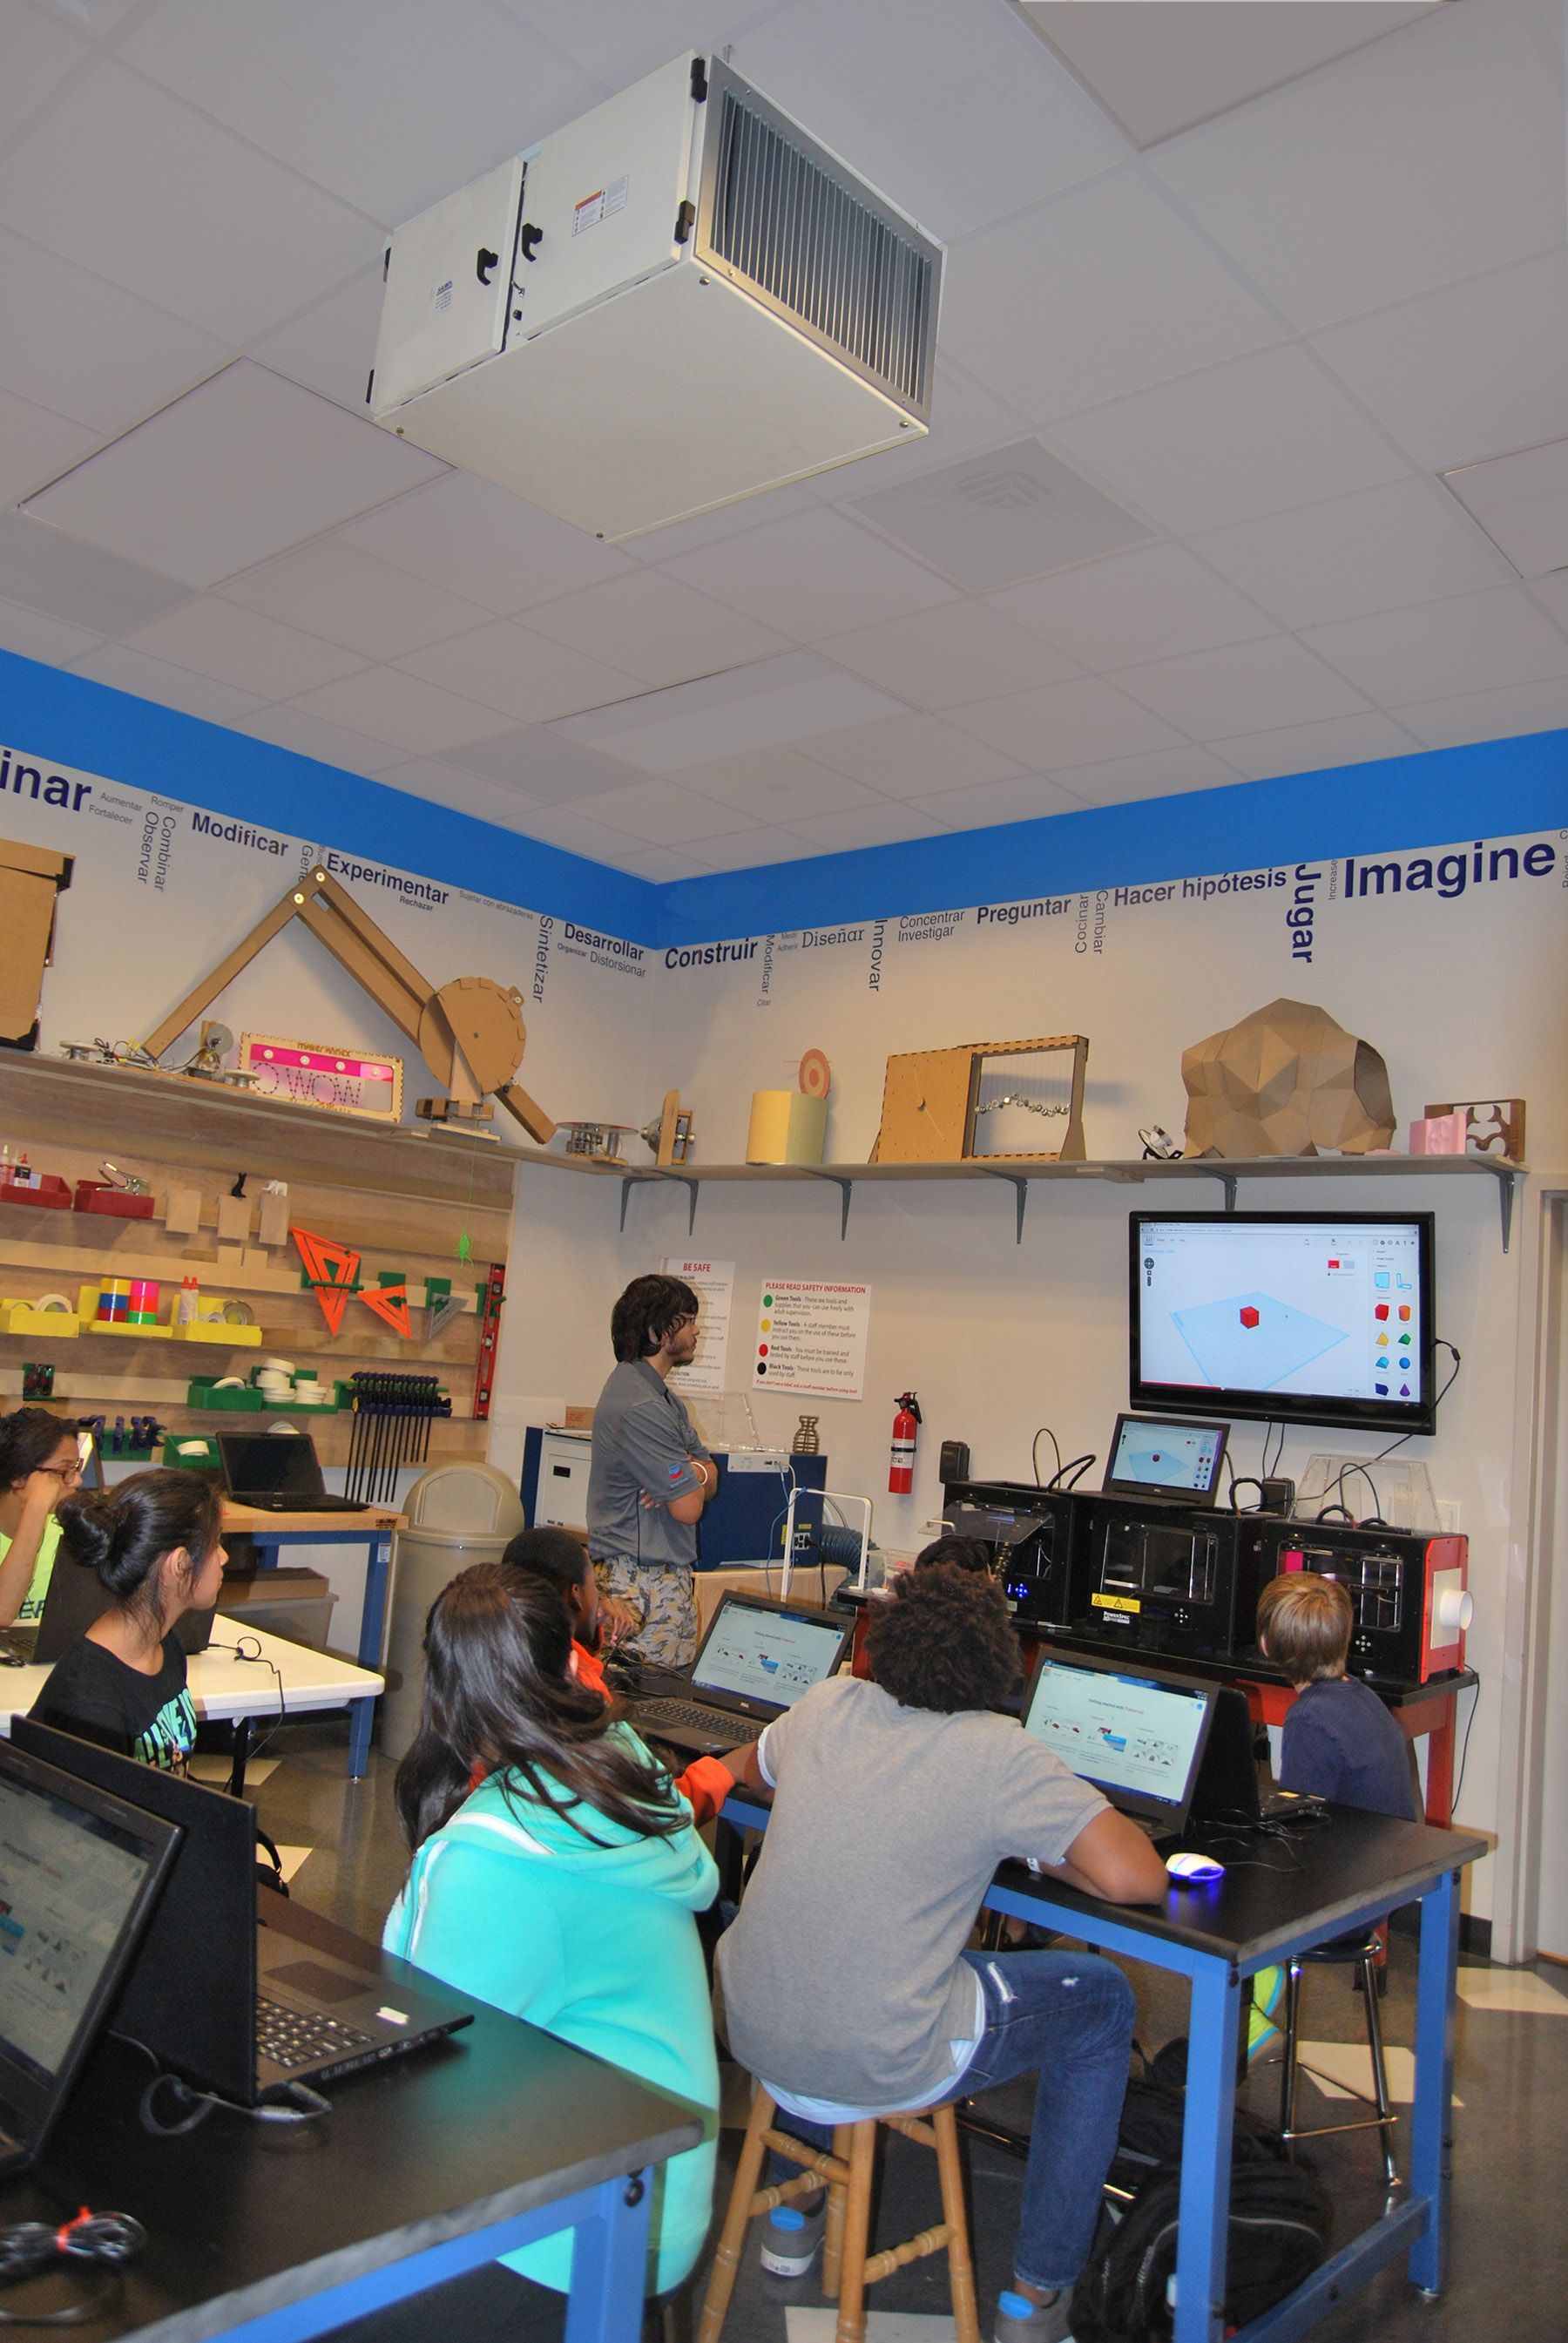 The Maker Annex at the Children's Museum of Houston is regularly